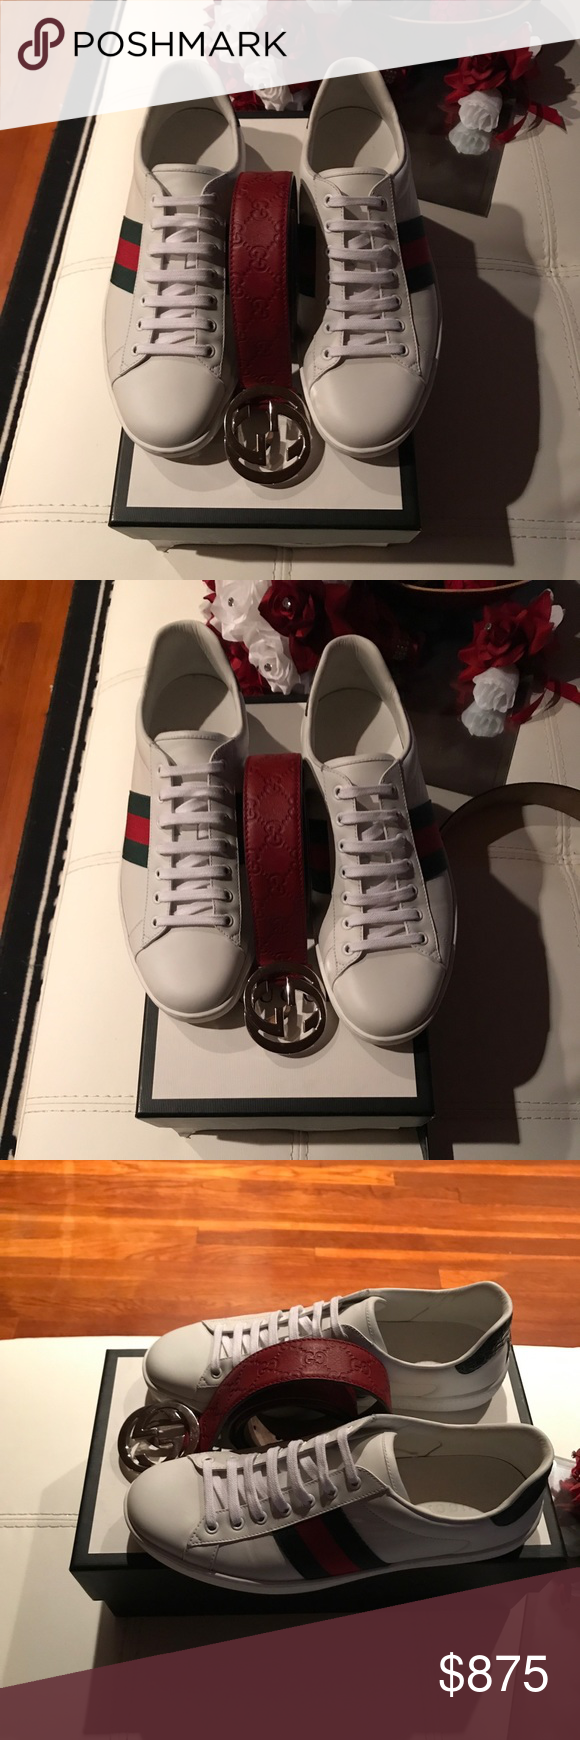 4350cd622 Mens Gucci Shoes & Belt Mens Gucci Shoes US 11 (G 10) Mens Gucci ...